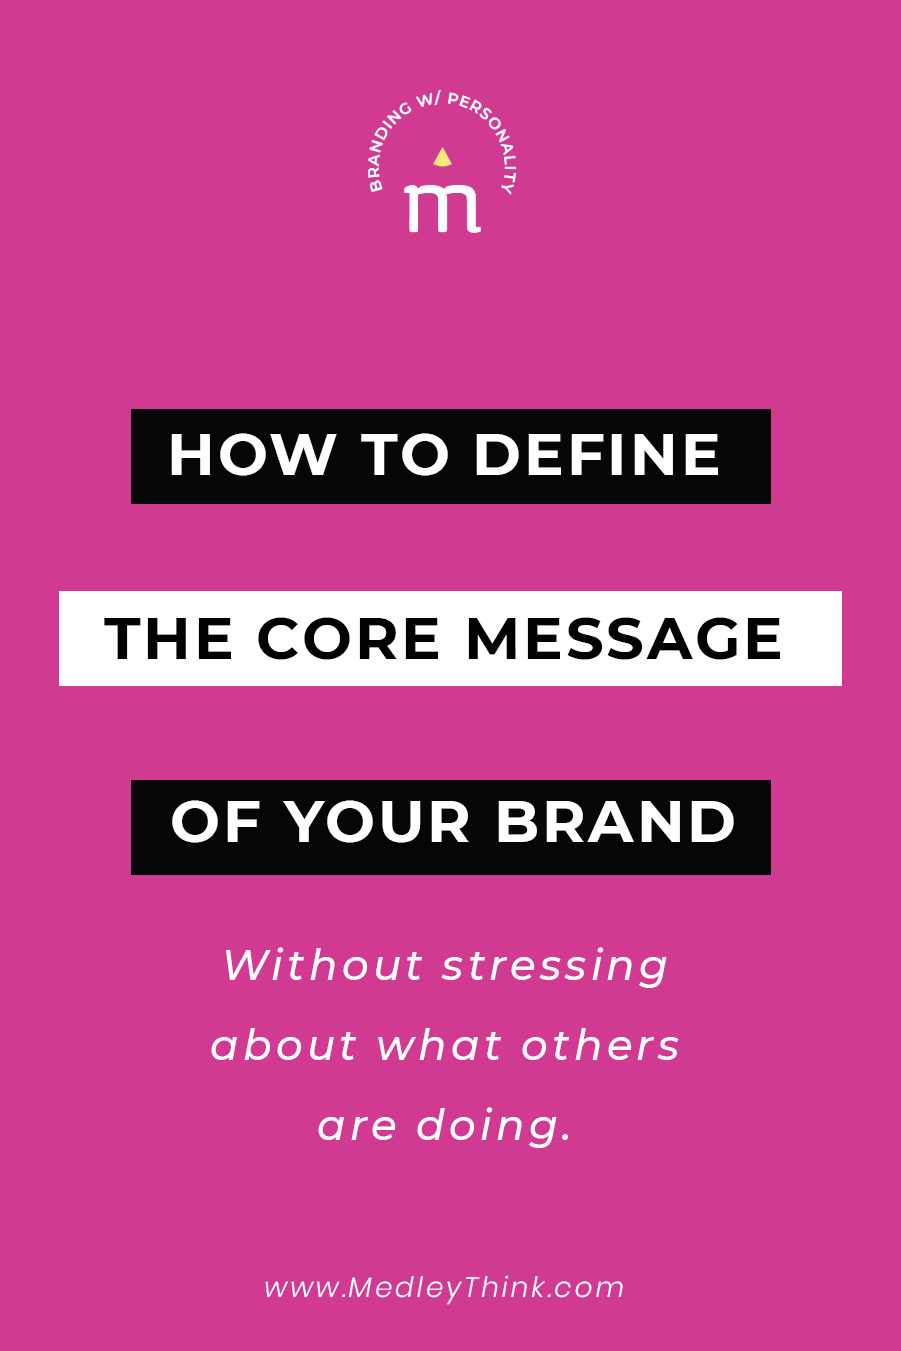 How to define the core message of your brand without stressing about what others are doing? #branding #branding101 #brandcoach #brand #archetypes #medleythink